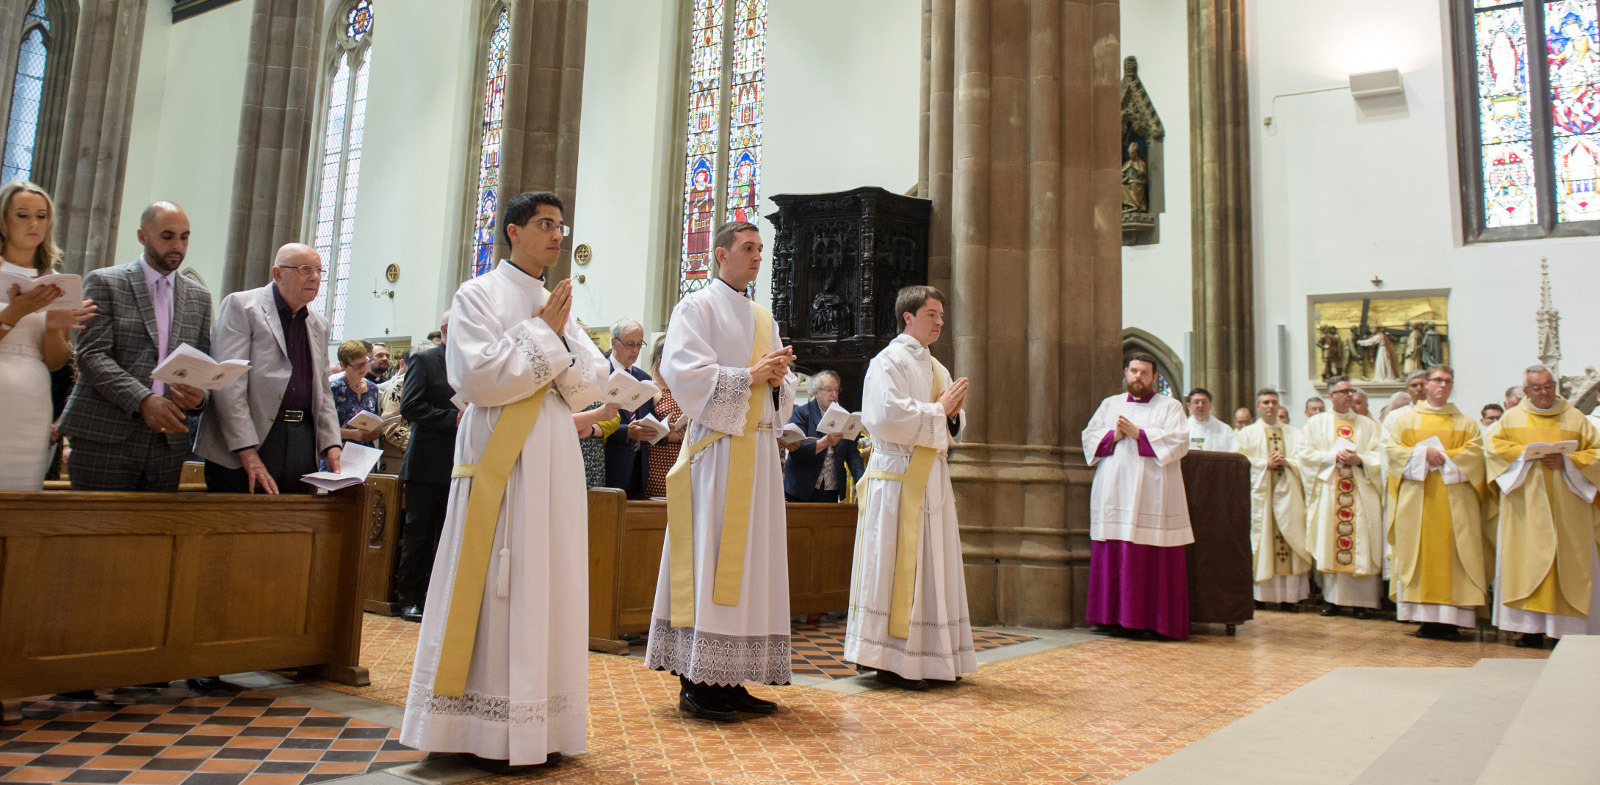 Three priests ordained at St Chad's